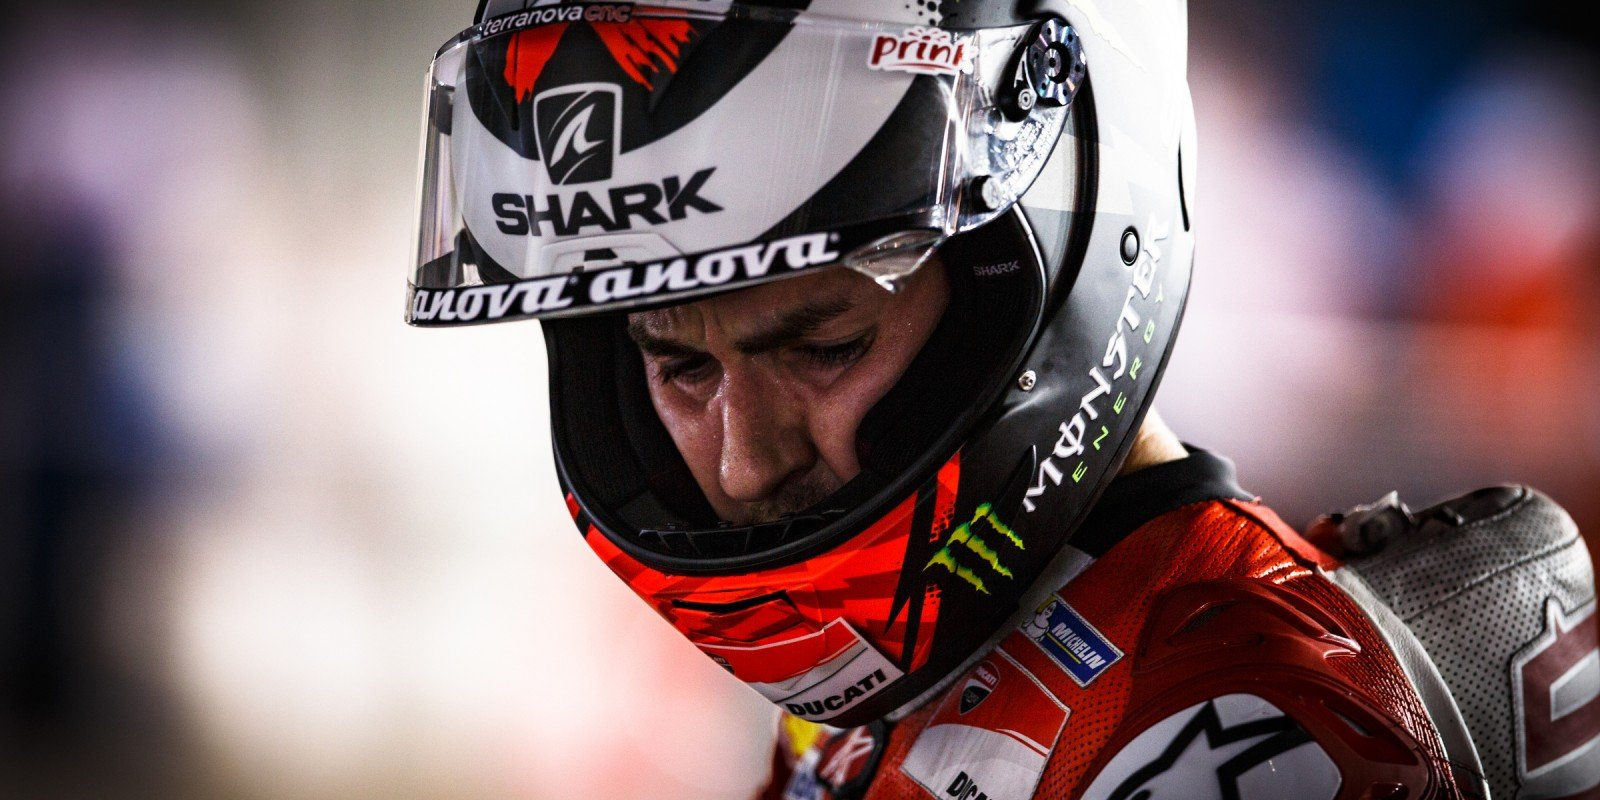 Jorge Lorenzo at the 2017 Grand Prix of Qatar